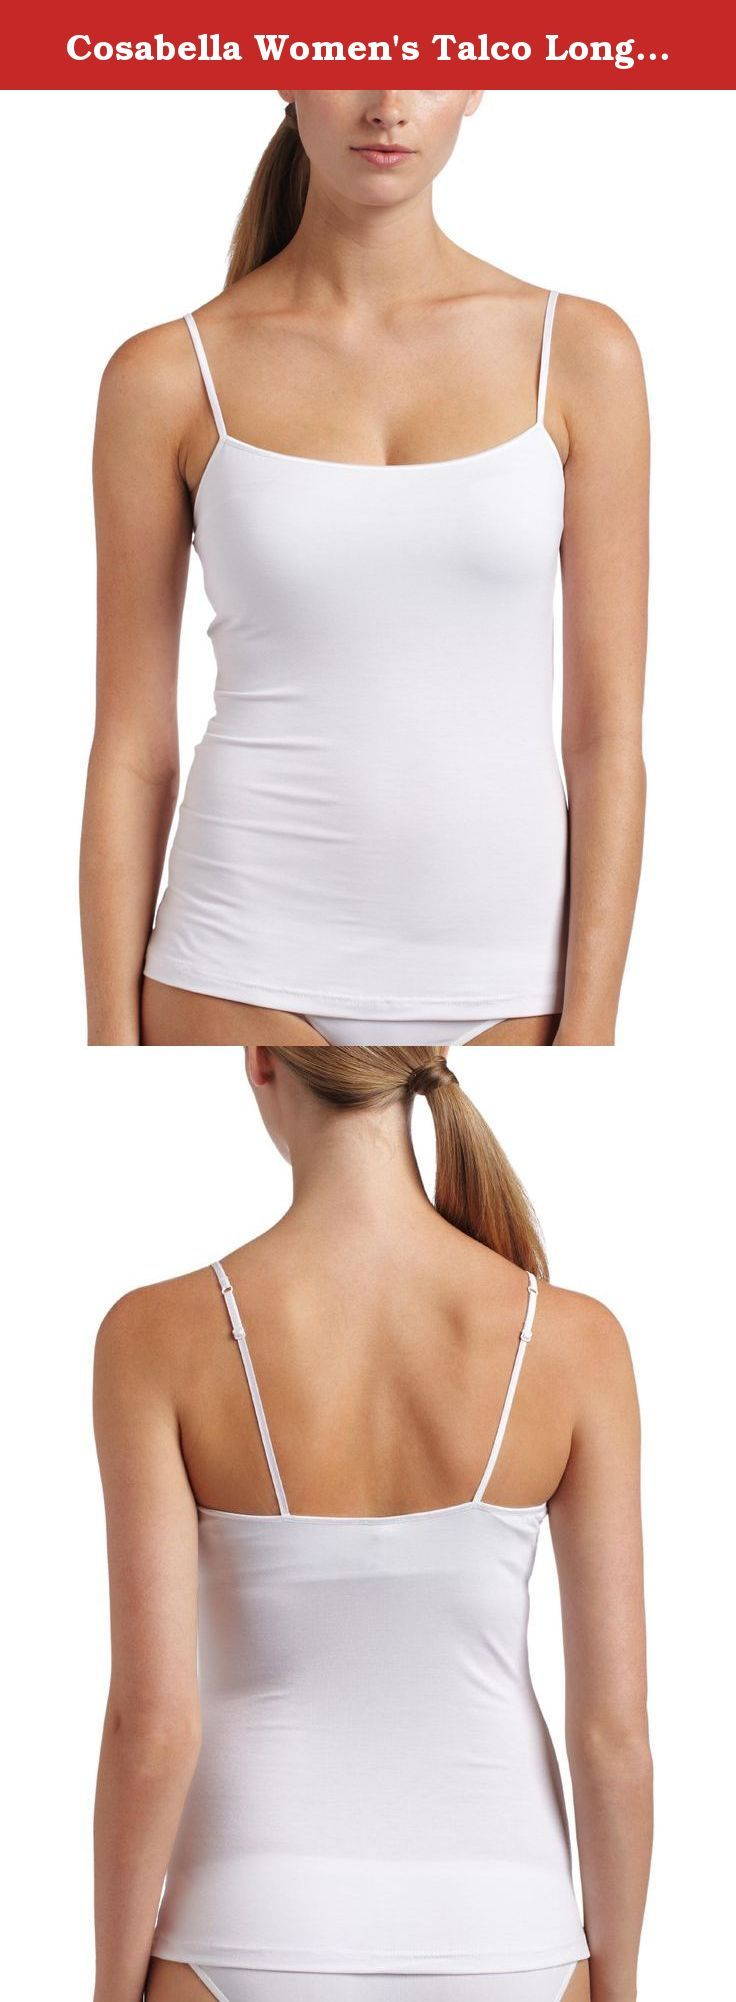 Cosabella Women's Talco Long Camisole, White, Medium. Rich viscose jersey with soft elastic on waist and back.